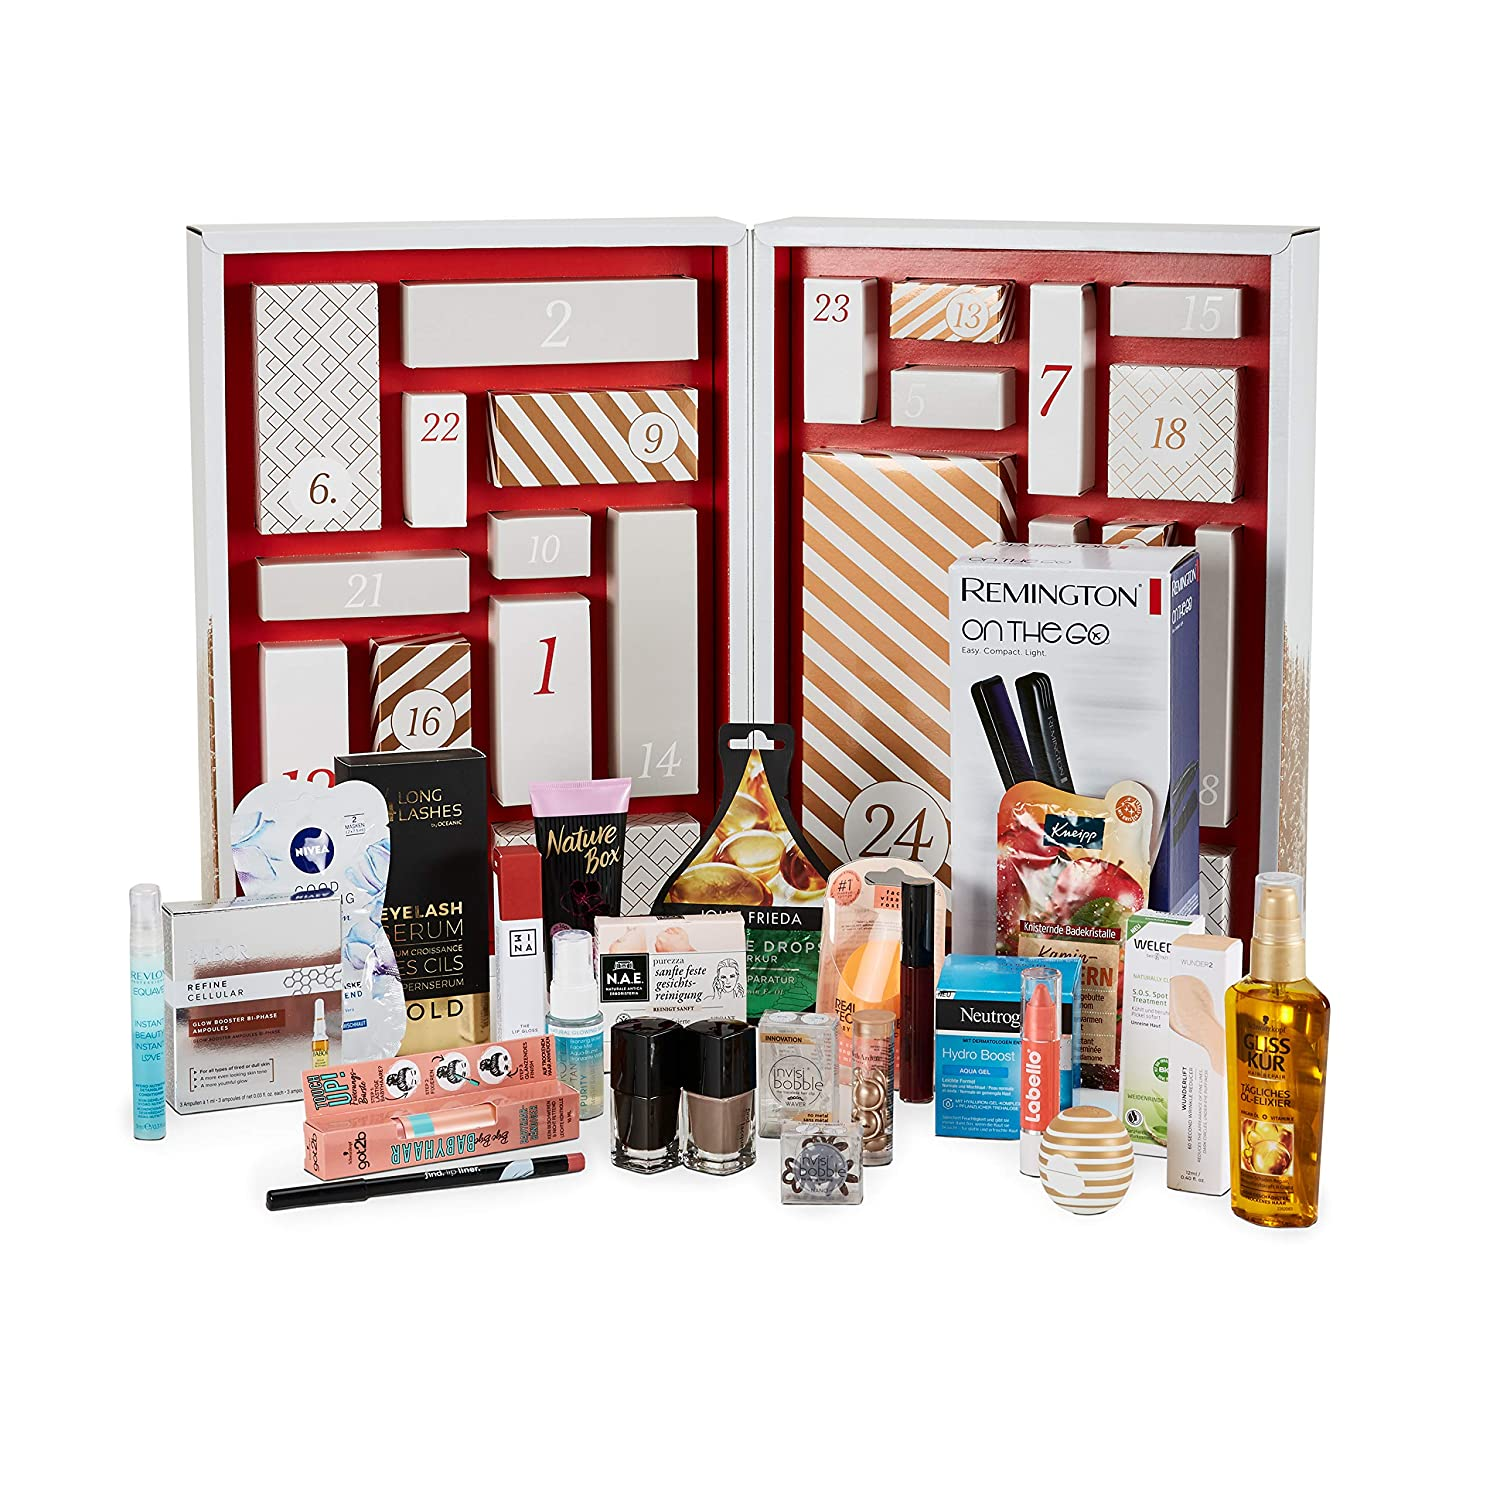 Amazon Beauty Adventskalender 2020 Inhalt